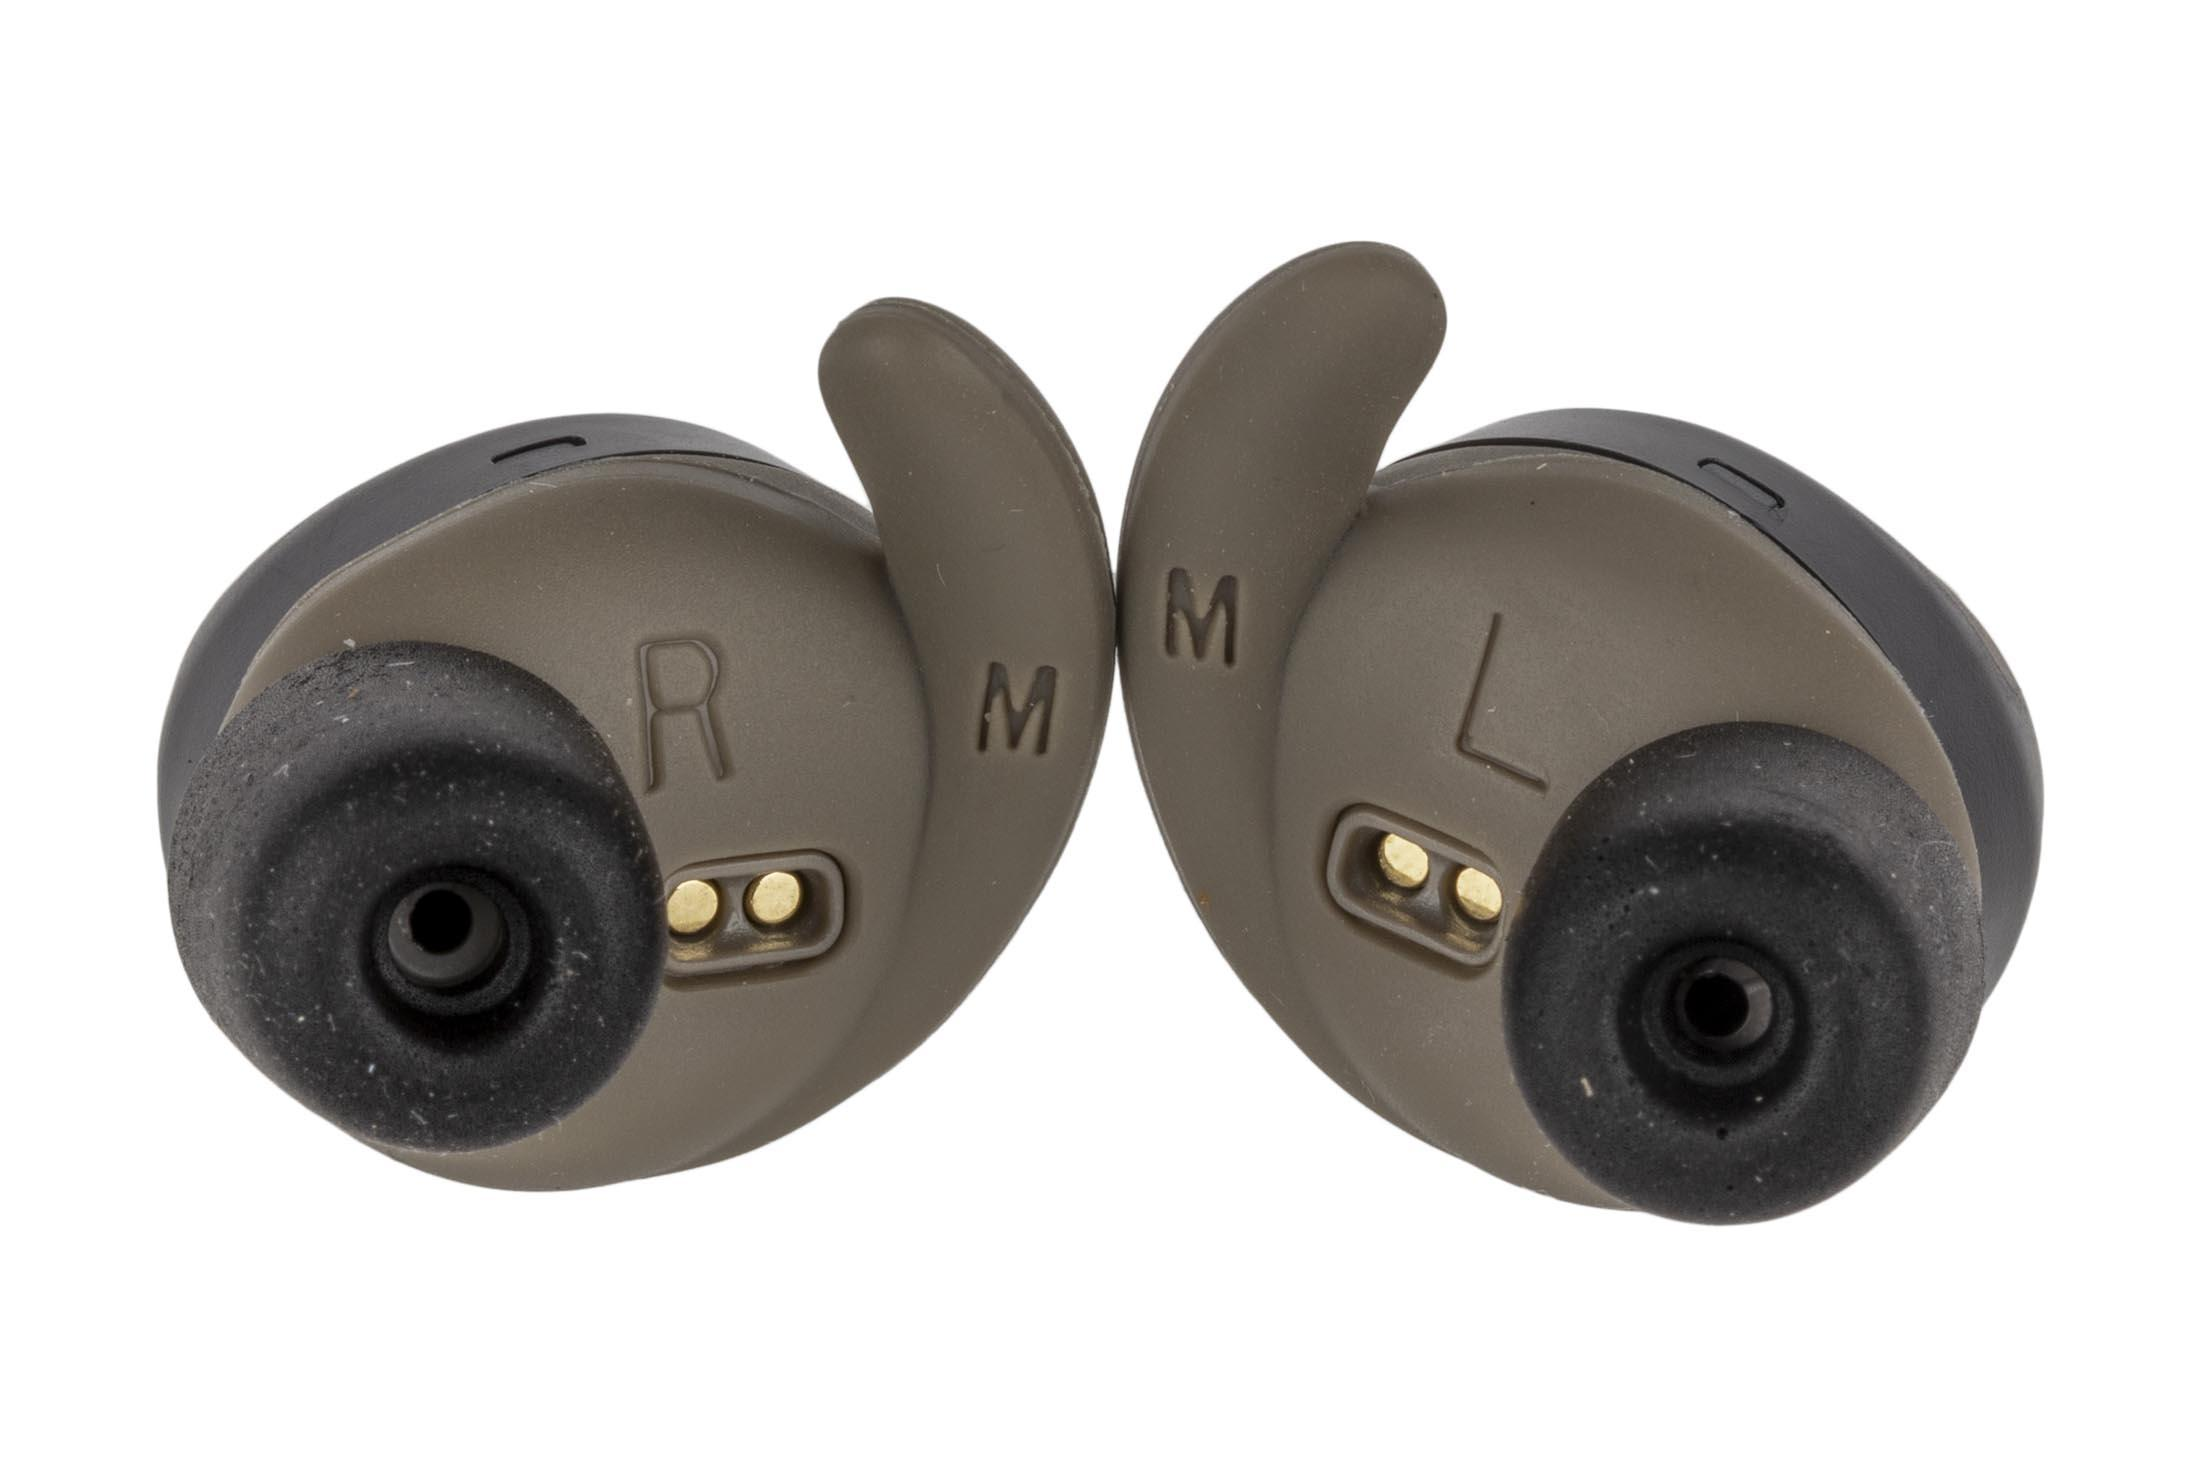 fd5cd91e5ac ... flat dark earth color; The Walker's electronic bluetooth earbud ear  protection comes with multiple foam tips to customize to your; The walkers  silencer ...